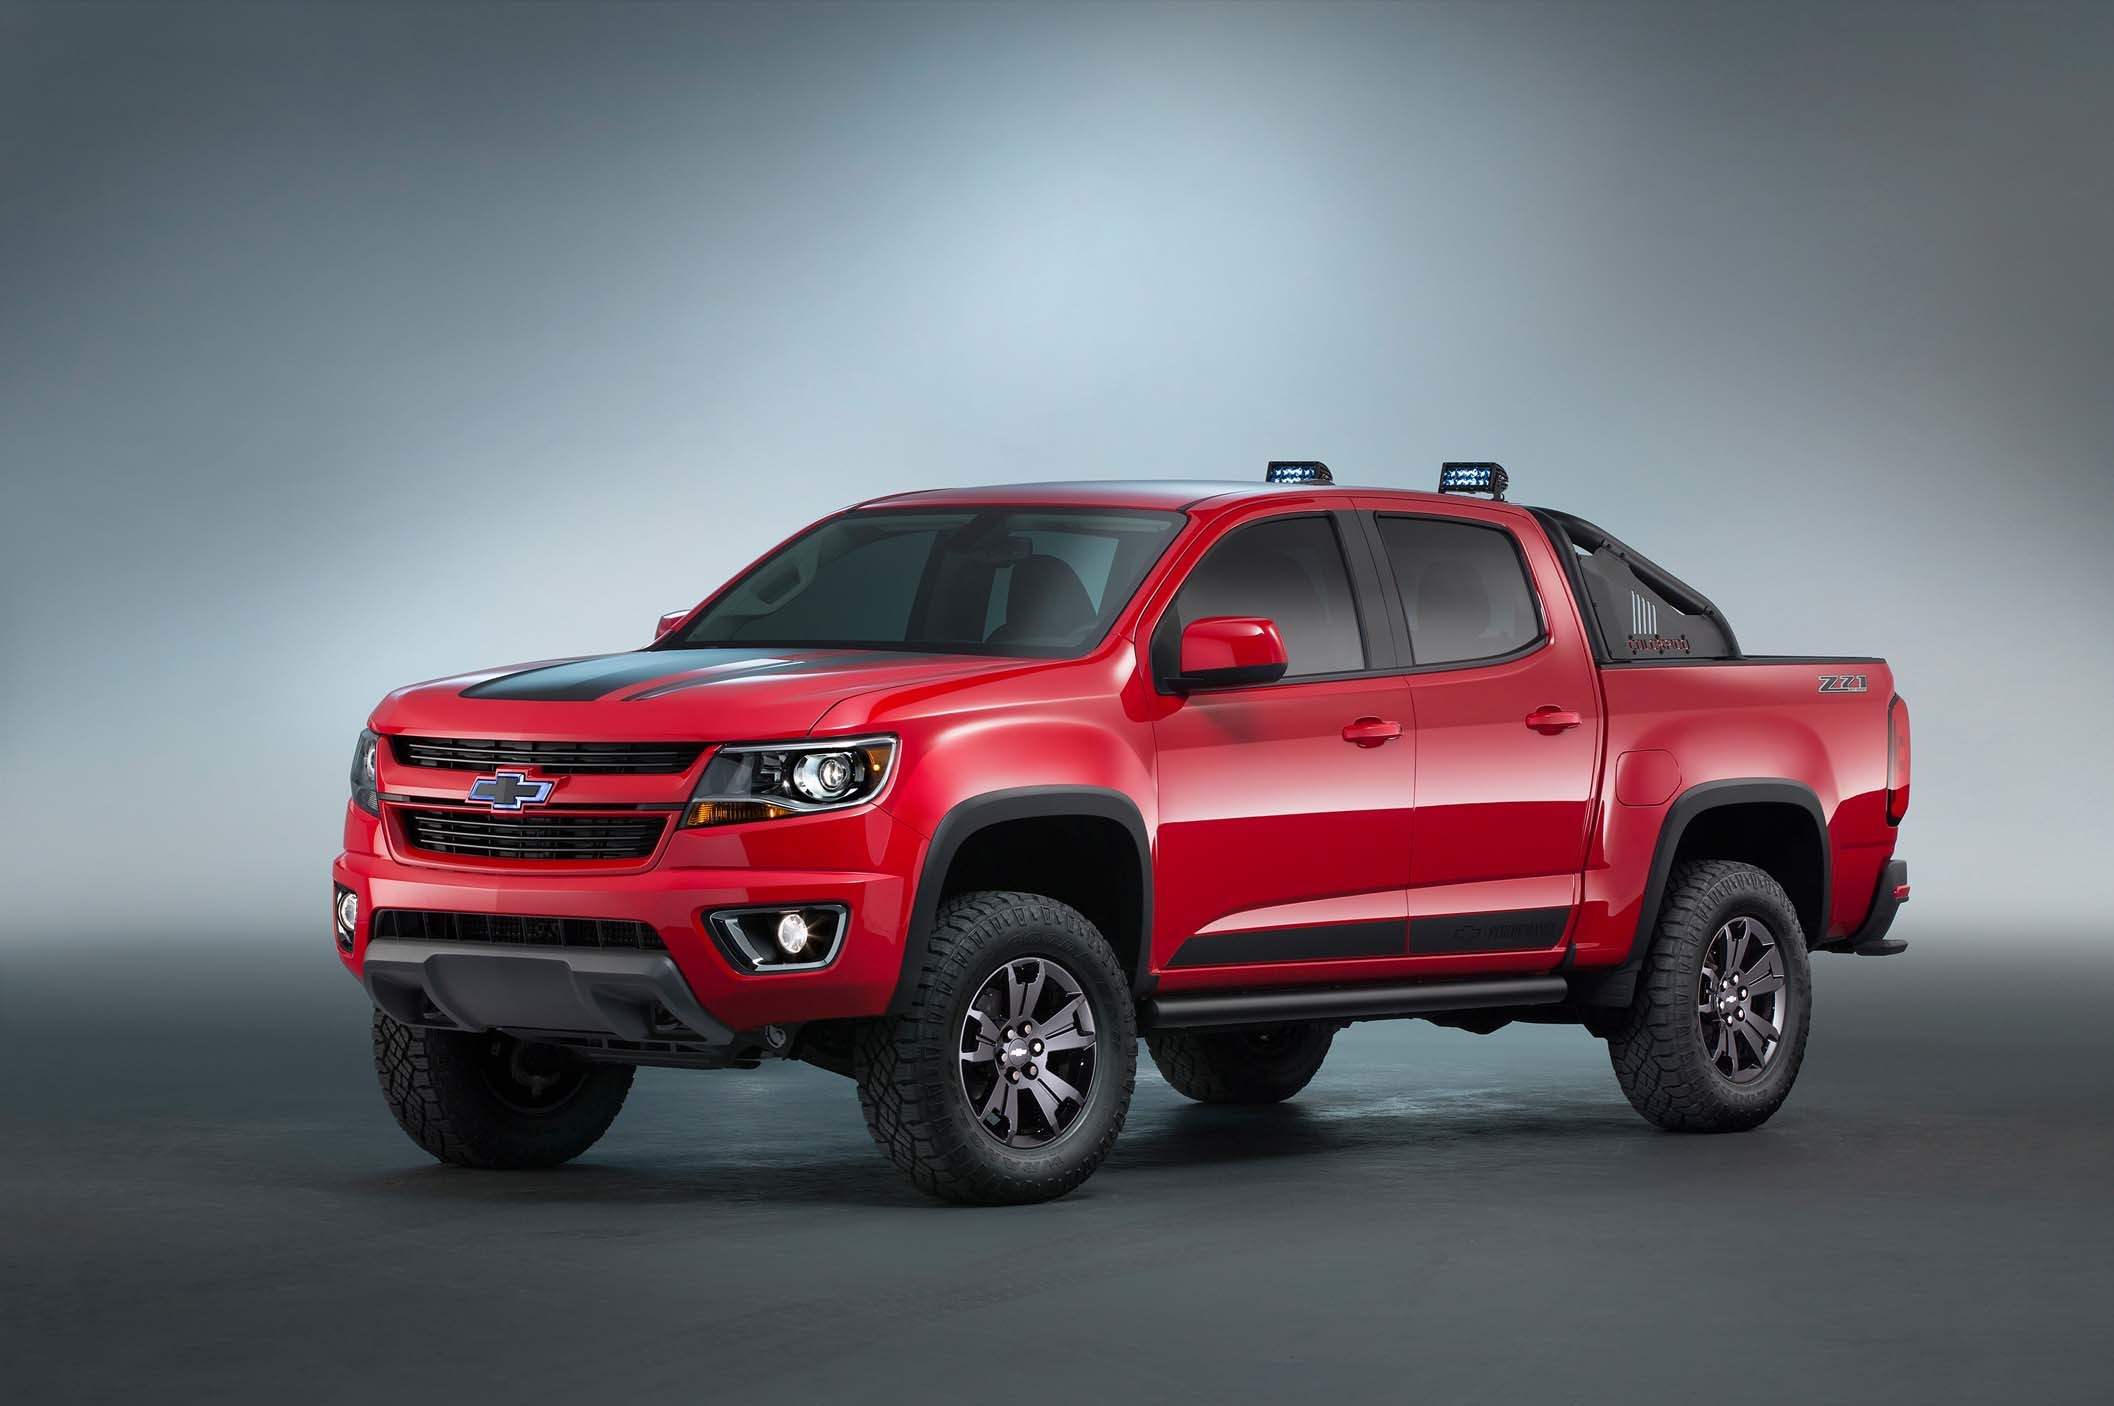 Lifted Chevy Colorado >> Chevrolet Colorado Z71 Trail Boss 3.0 Concept Is a Ford F-150 Raptor Clone at SEMA - autoevolution